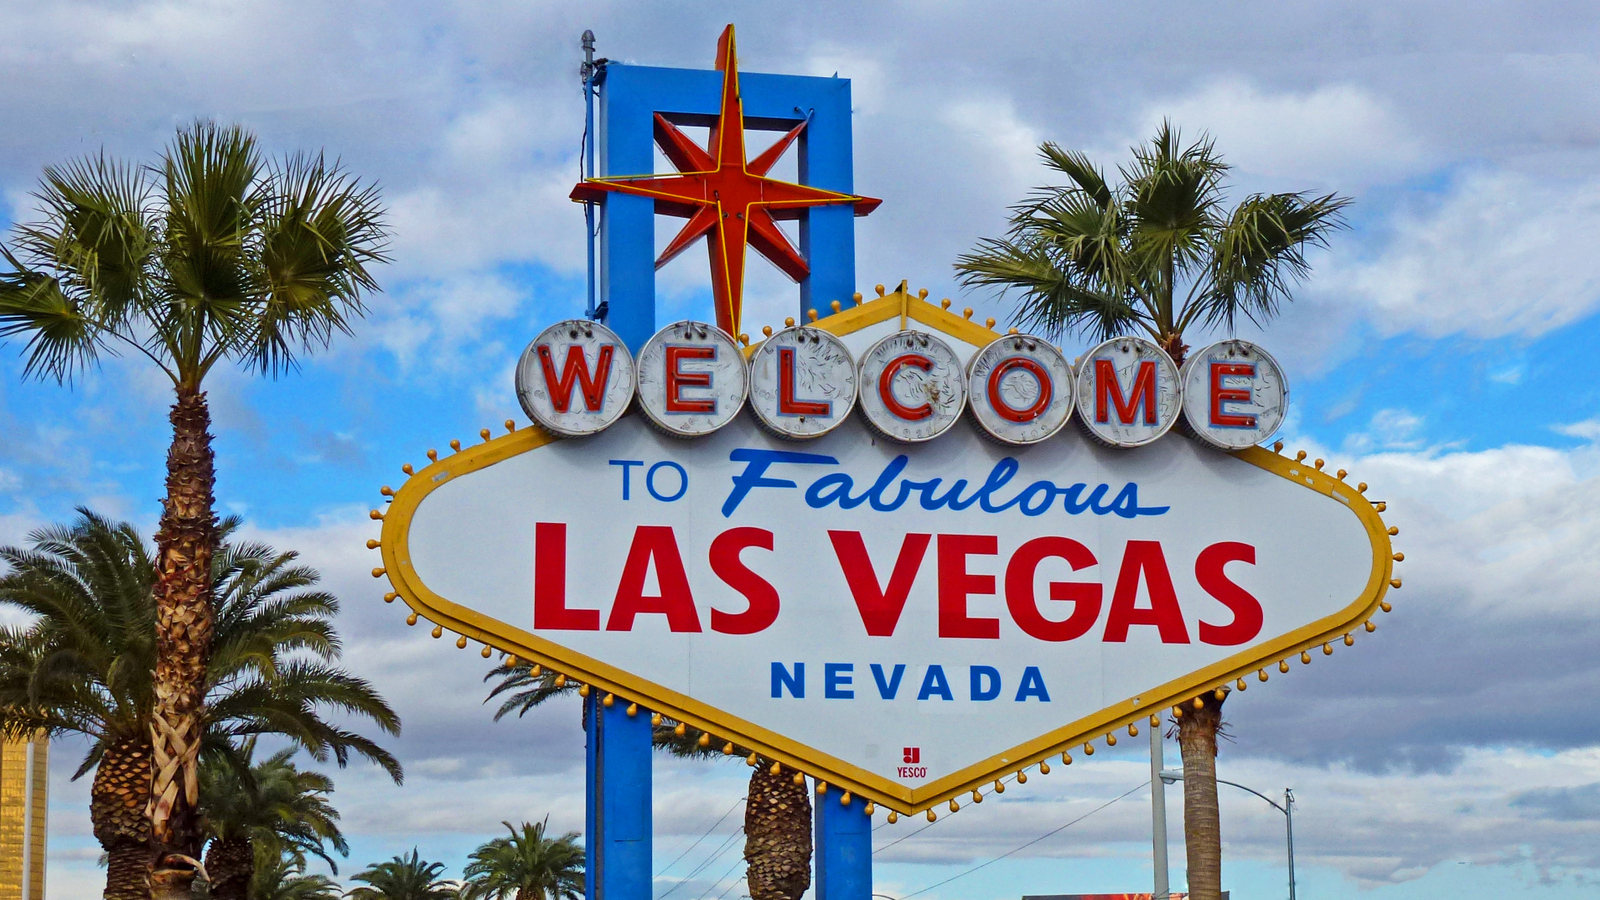 The iconic Welcome to Las Vegas sign on The Strip